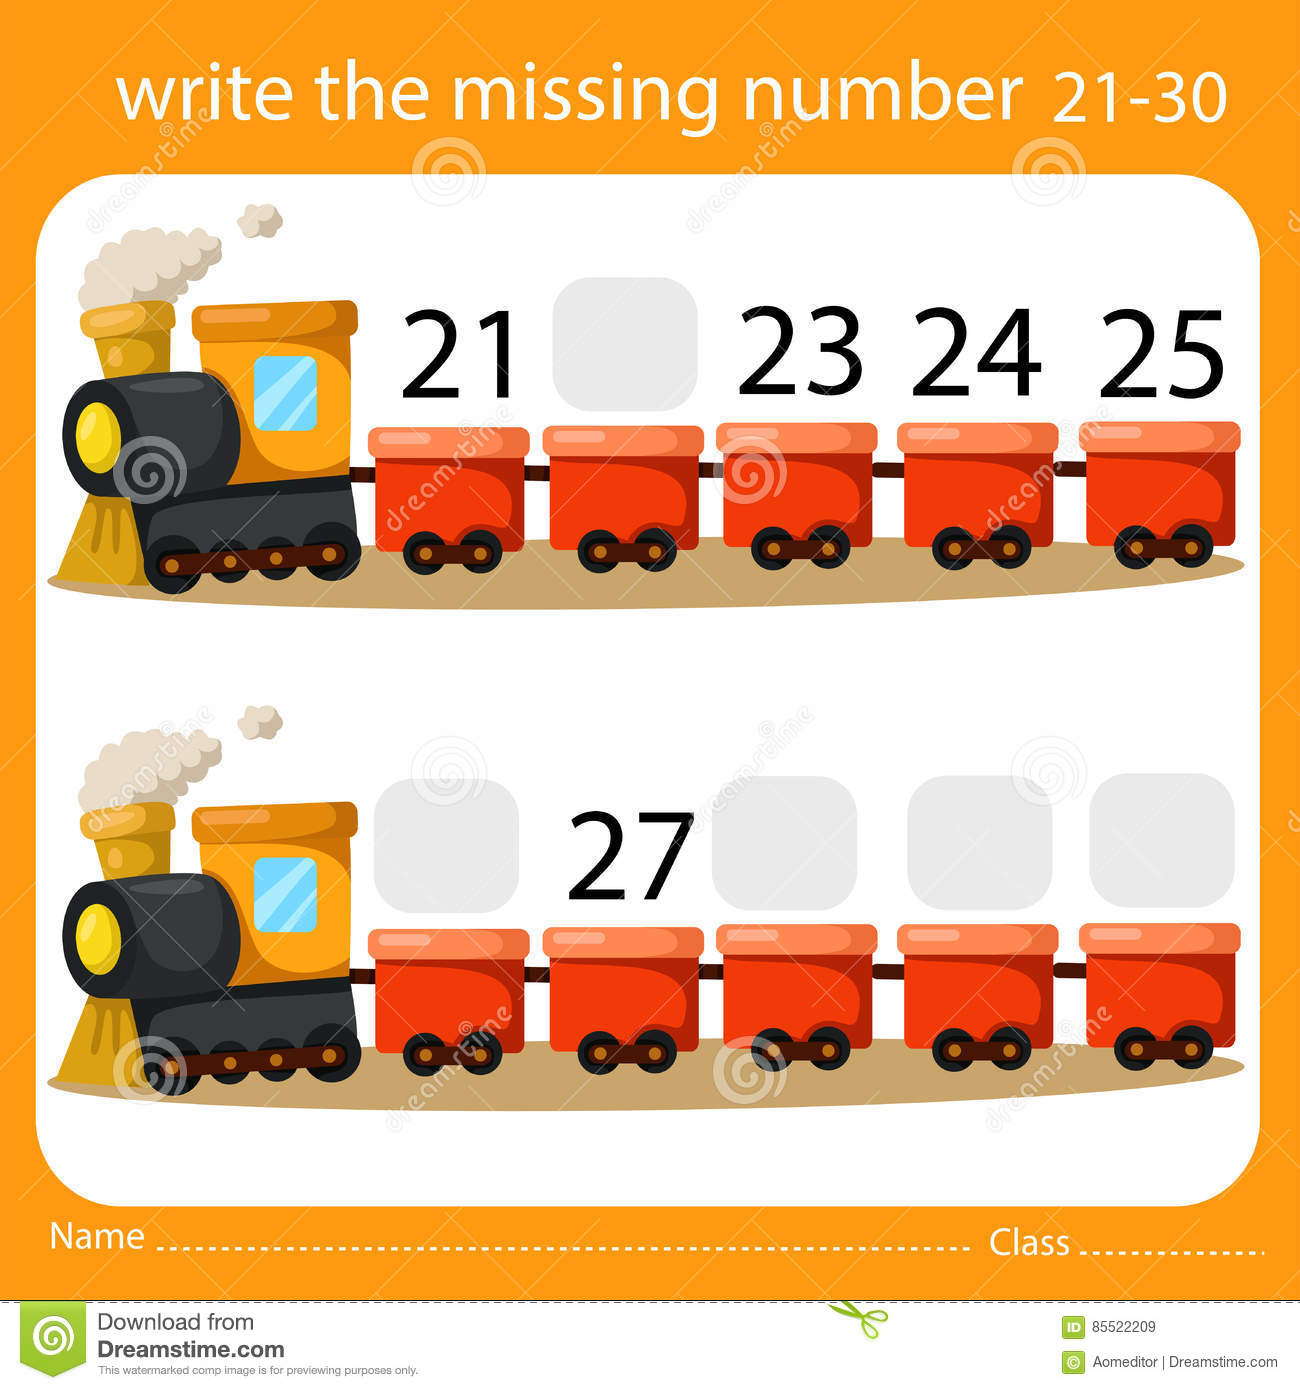 Illustrator Of Write The Missing Number 21 30 Stock Vector